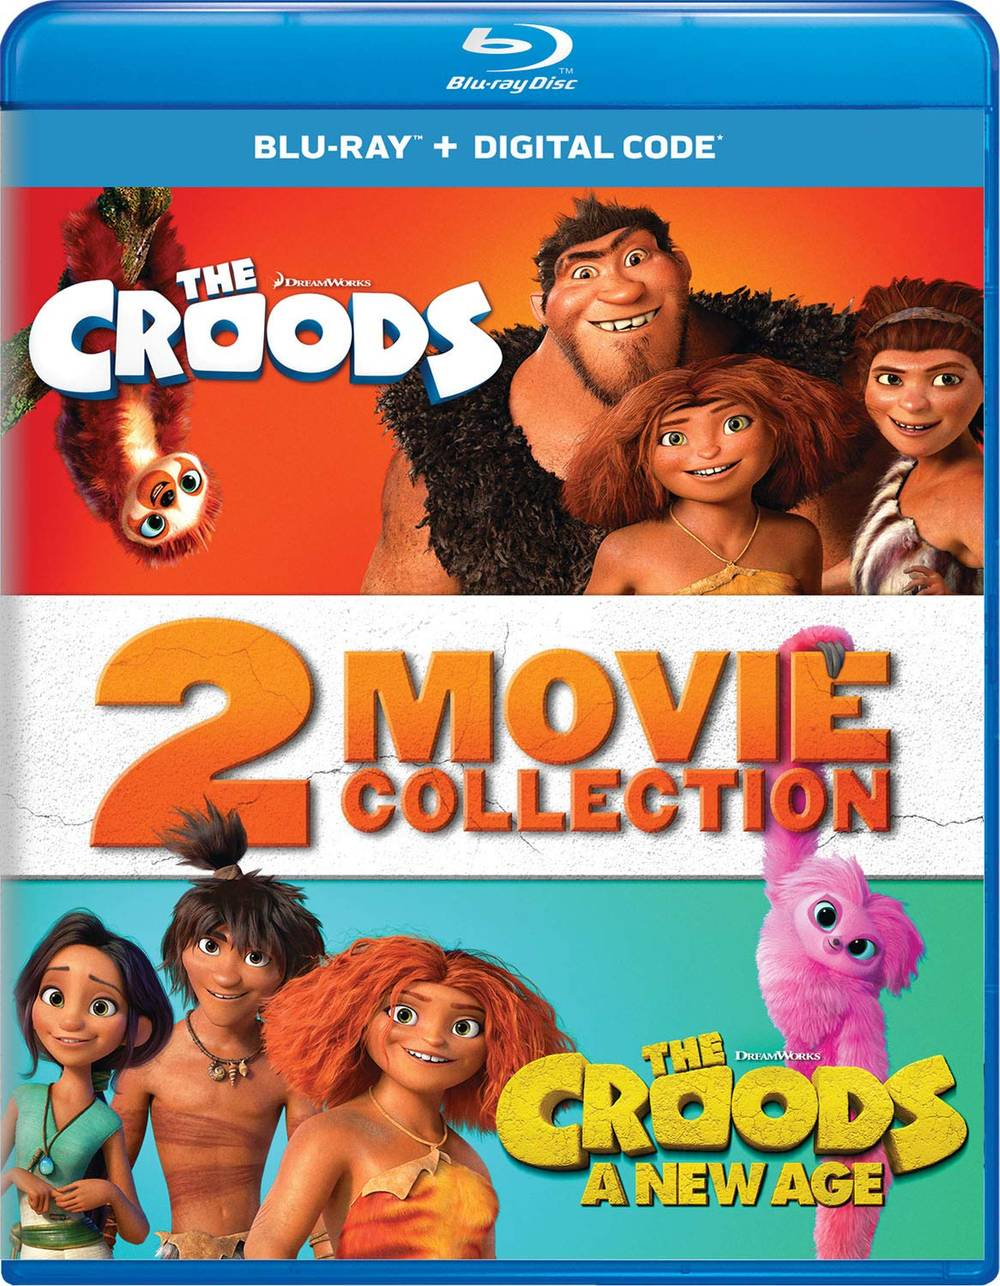 The Croods [Movie] - The Croods: 2-Movie Collection